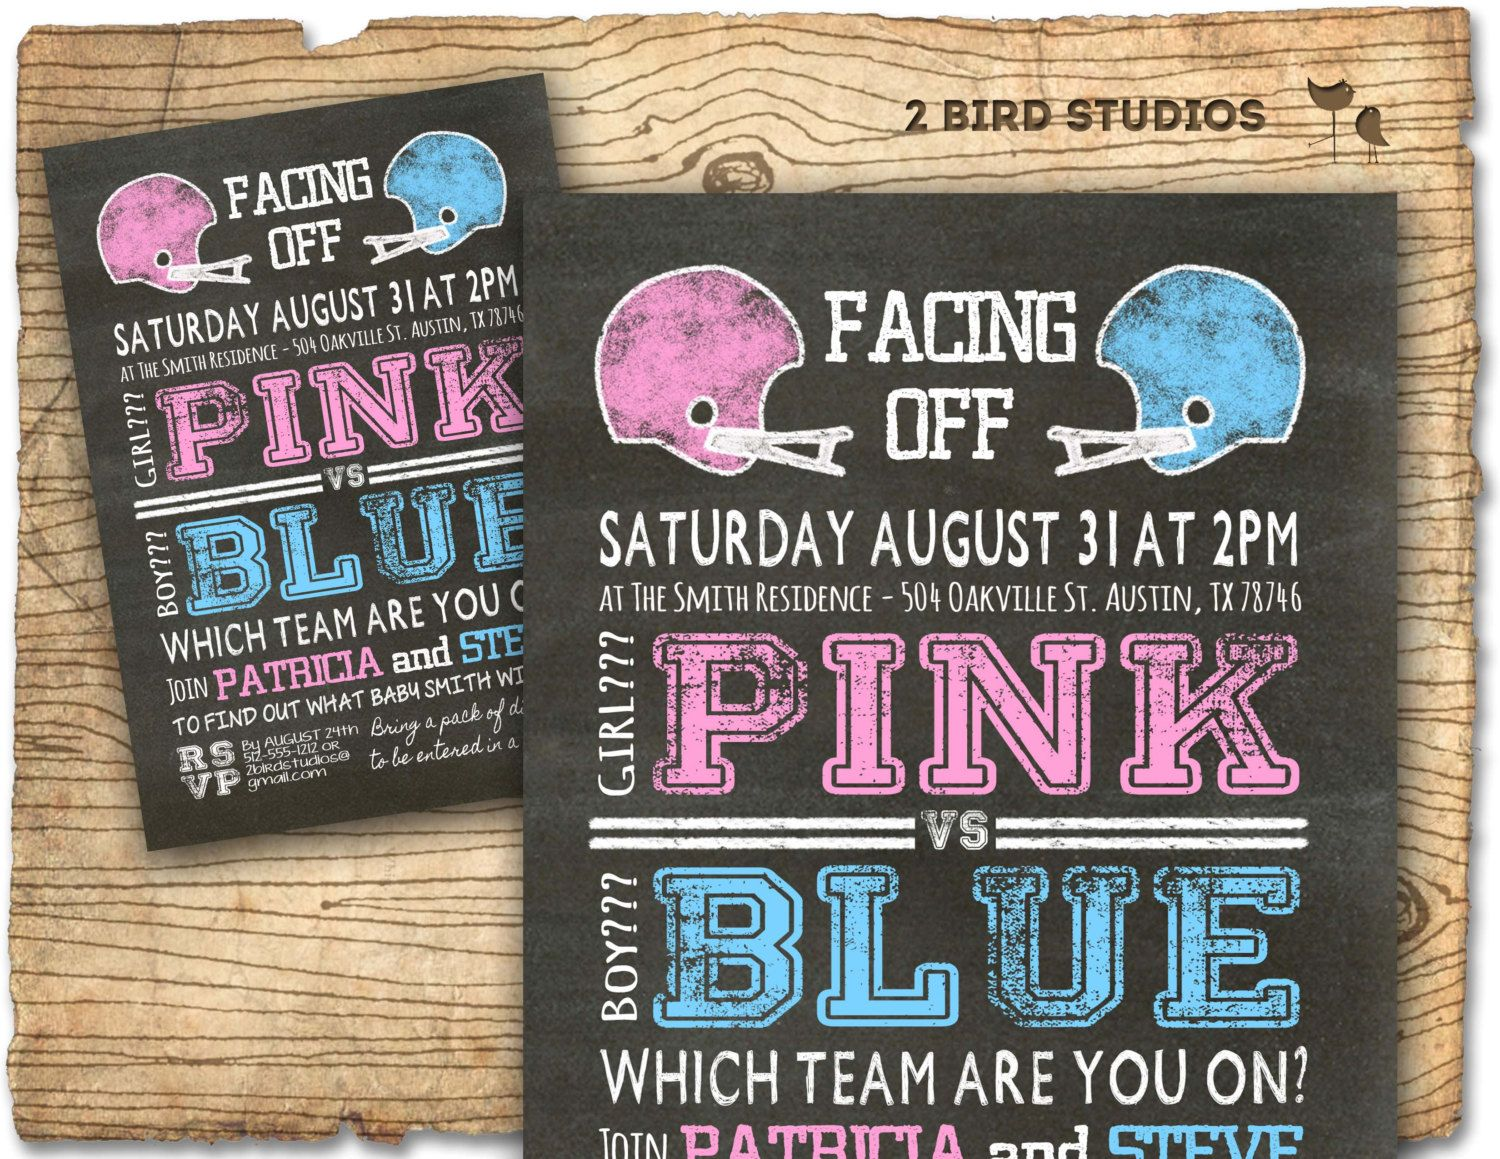 baby shower invitation for twins%0A Football gender reveal invitation football baby by  birdstudios